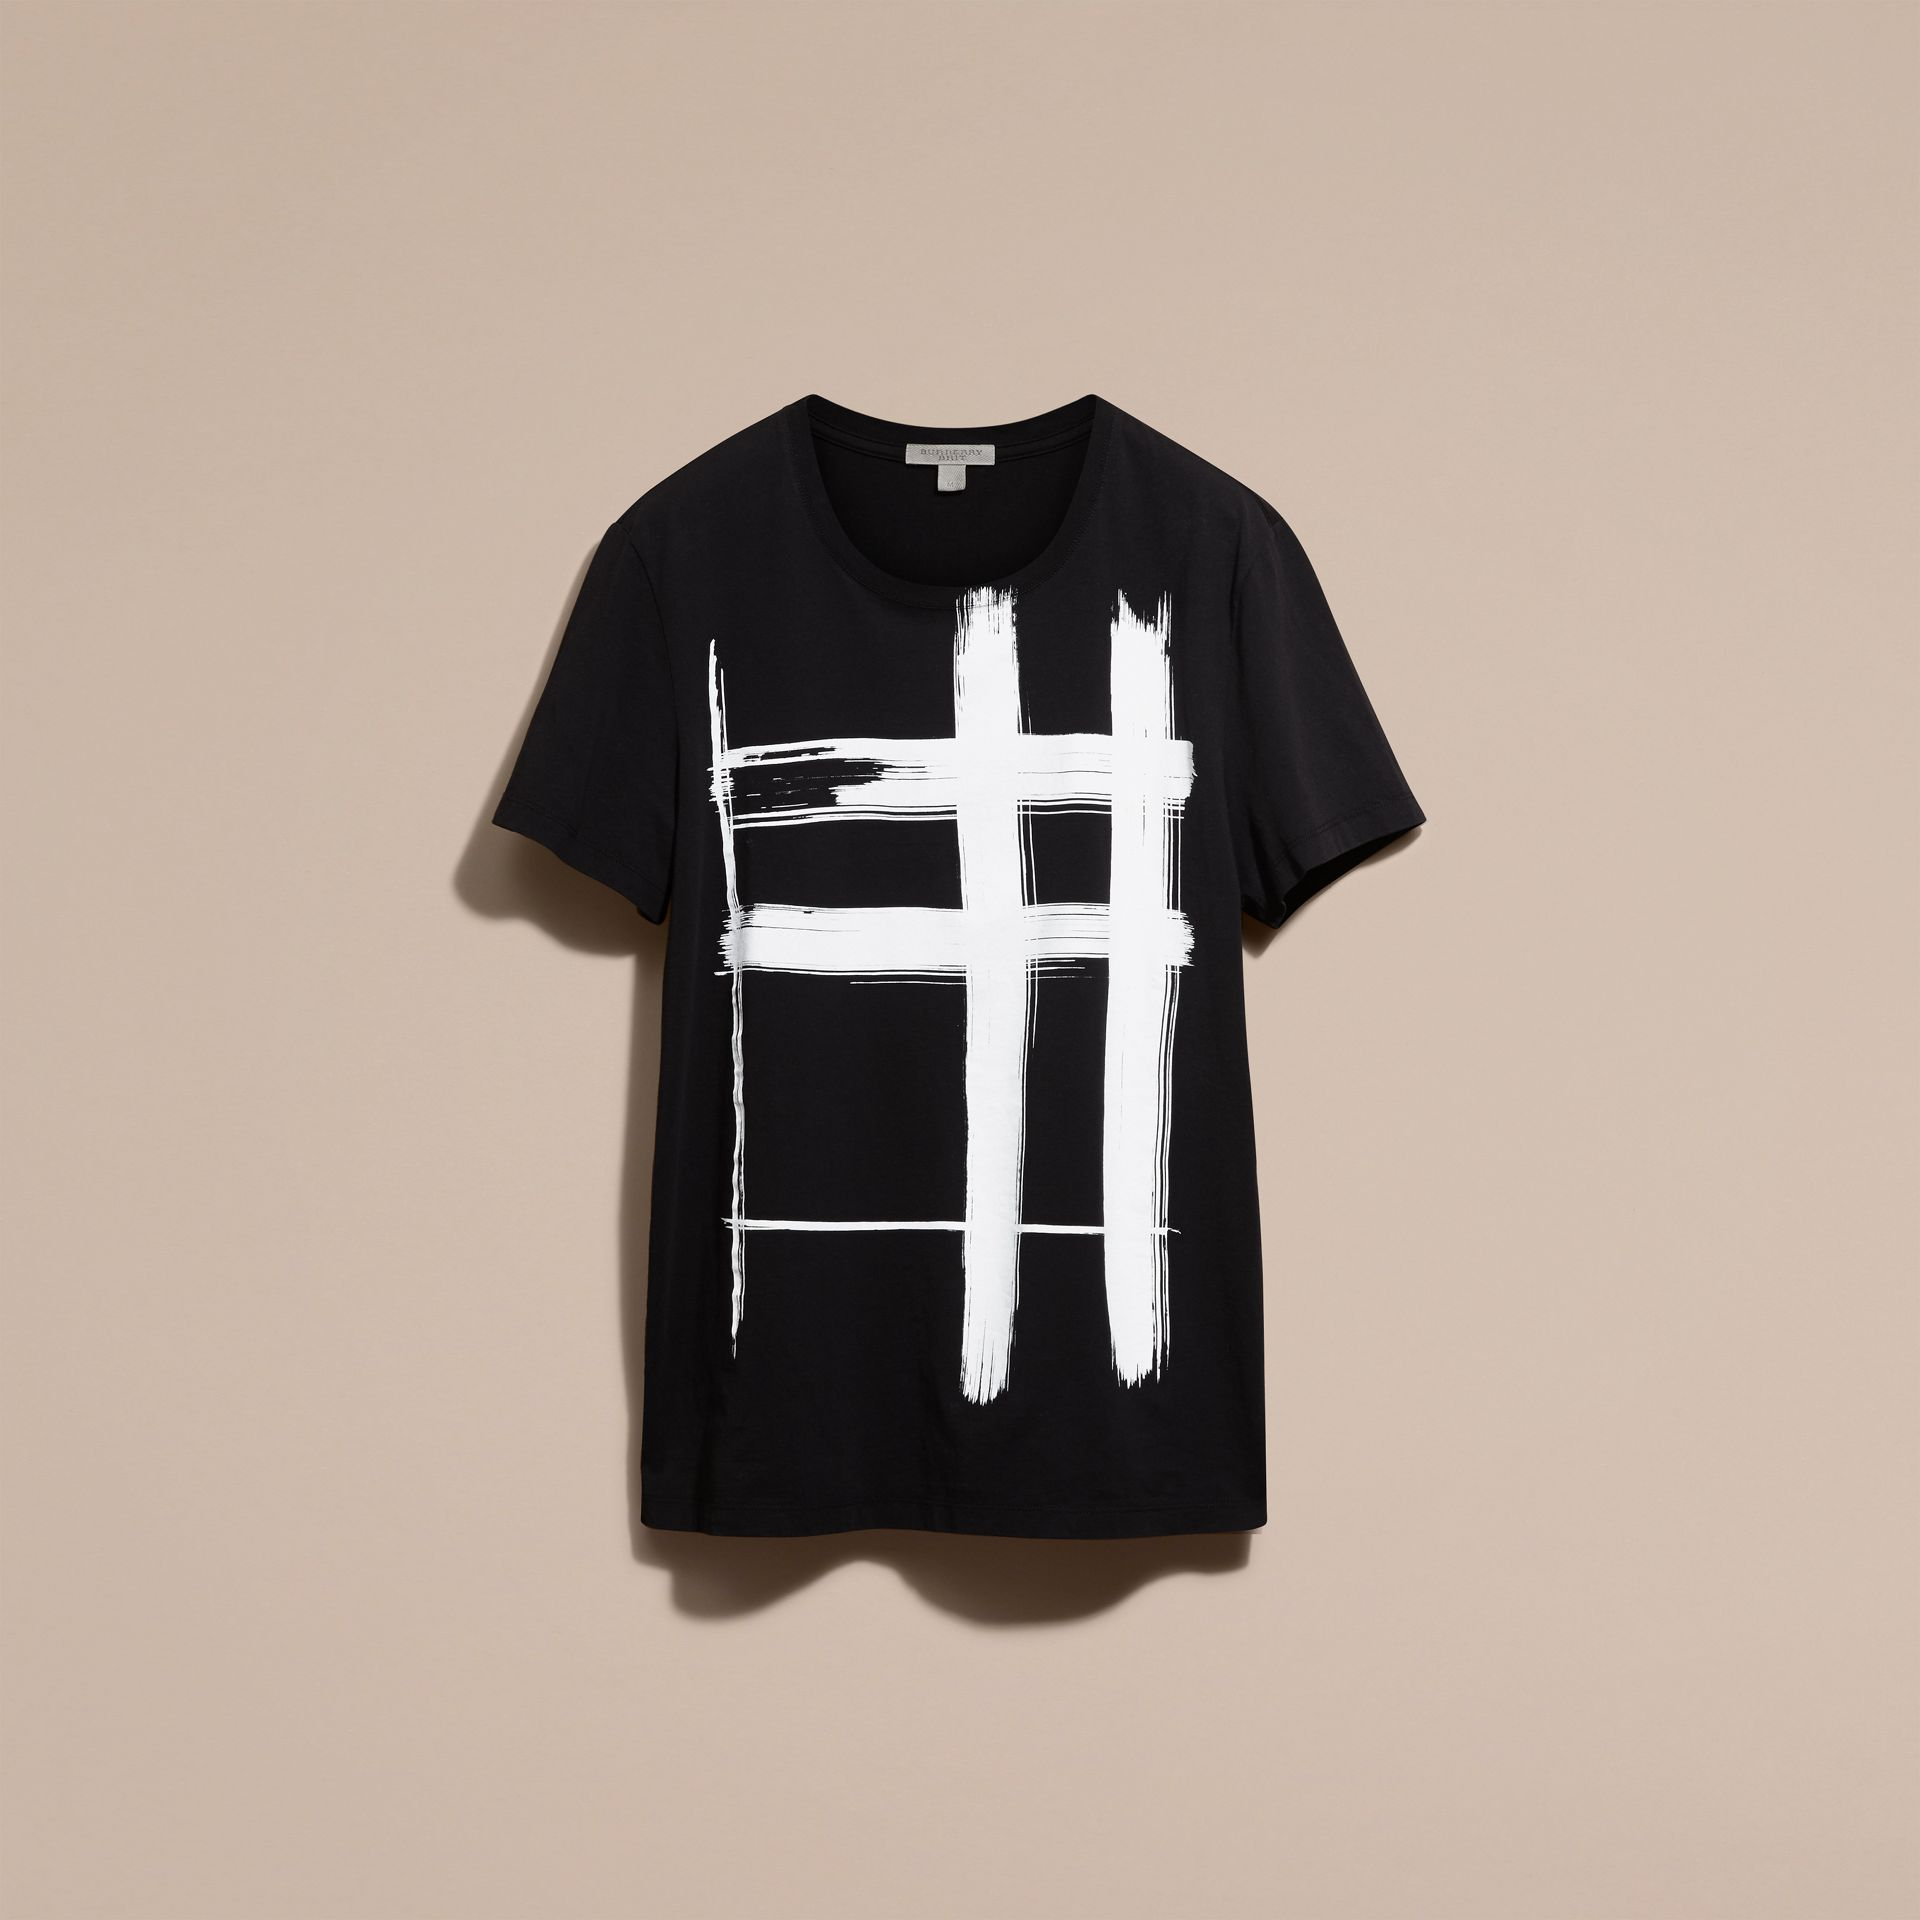 Black Brushstroke Check Print Cotton T-Shirt Black - gallery image 4